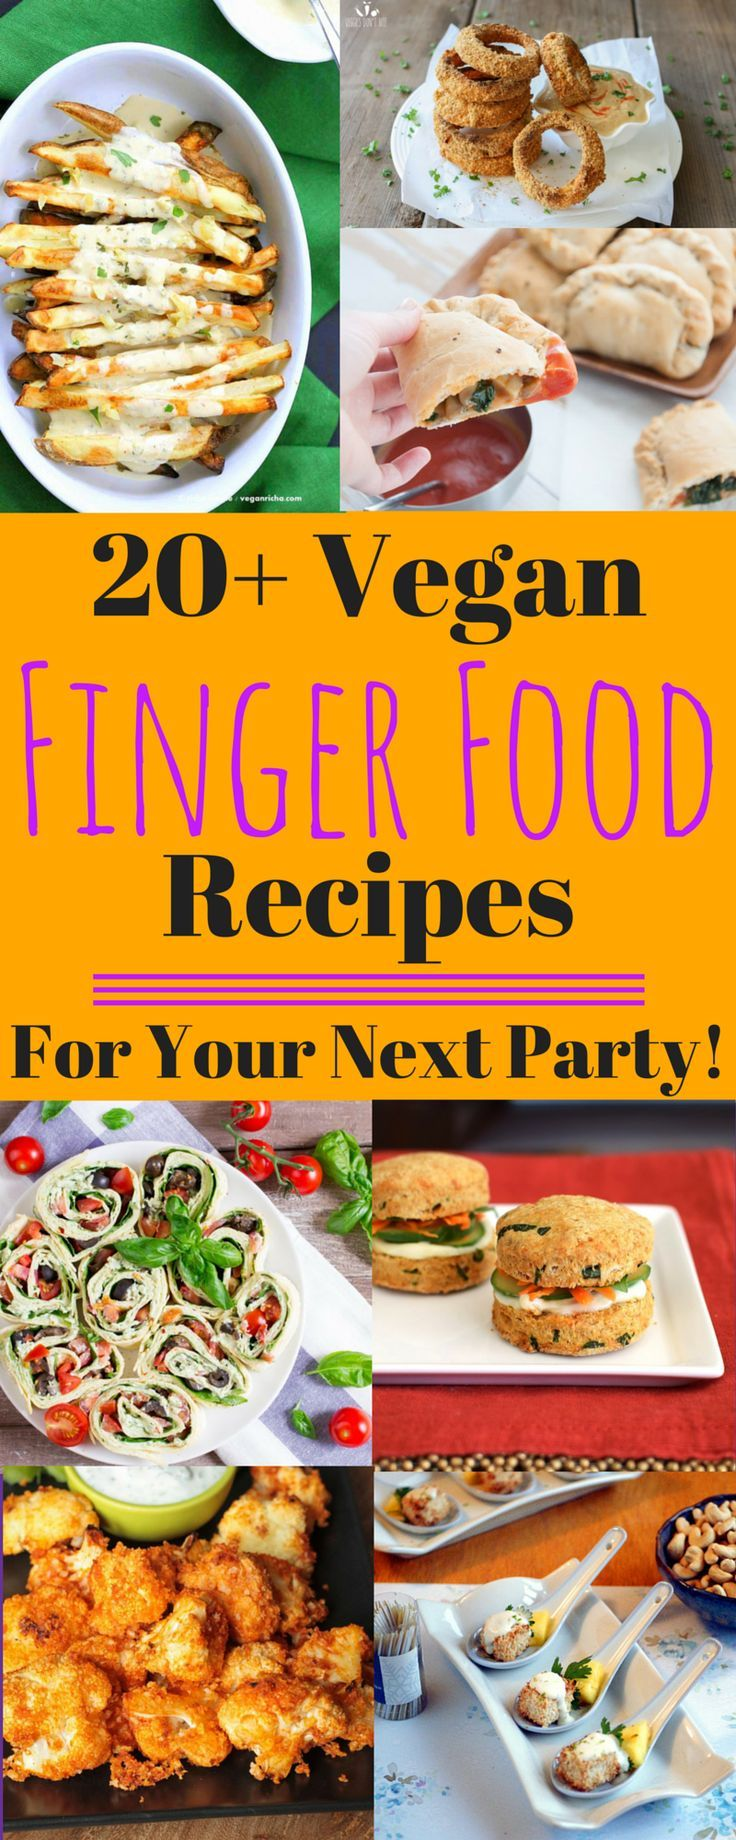 Vegan finger food recipes for your next party aperitivos recetas vegan finger food recipes for your next party aperitivos recetas y salsa forumfinder Image collections